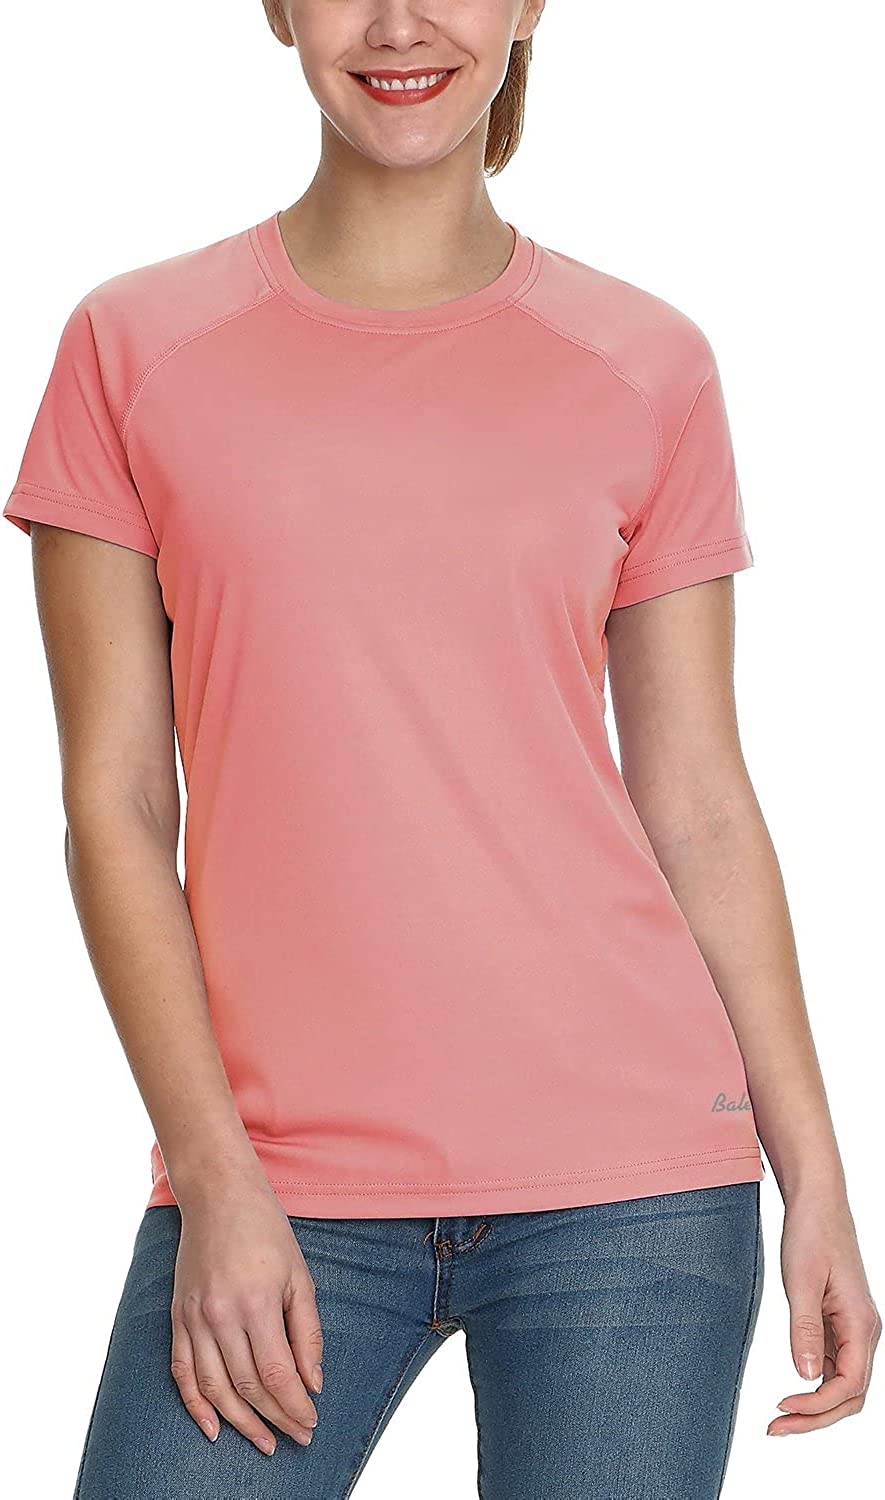 Sales of SALE items from new works BALEAF Women's Short Sleeve Shirts UPF T-S 50+ UV Protection Max 87% OFF Sun